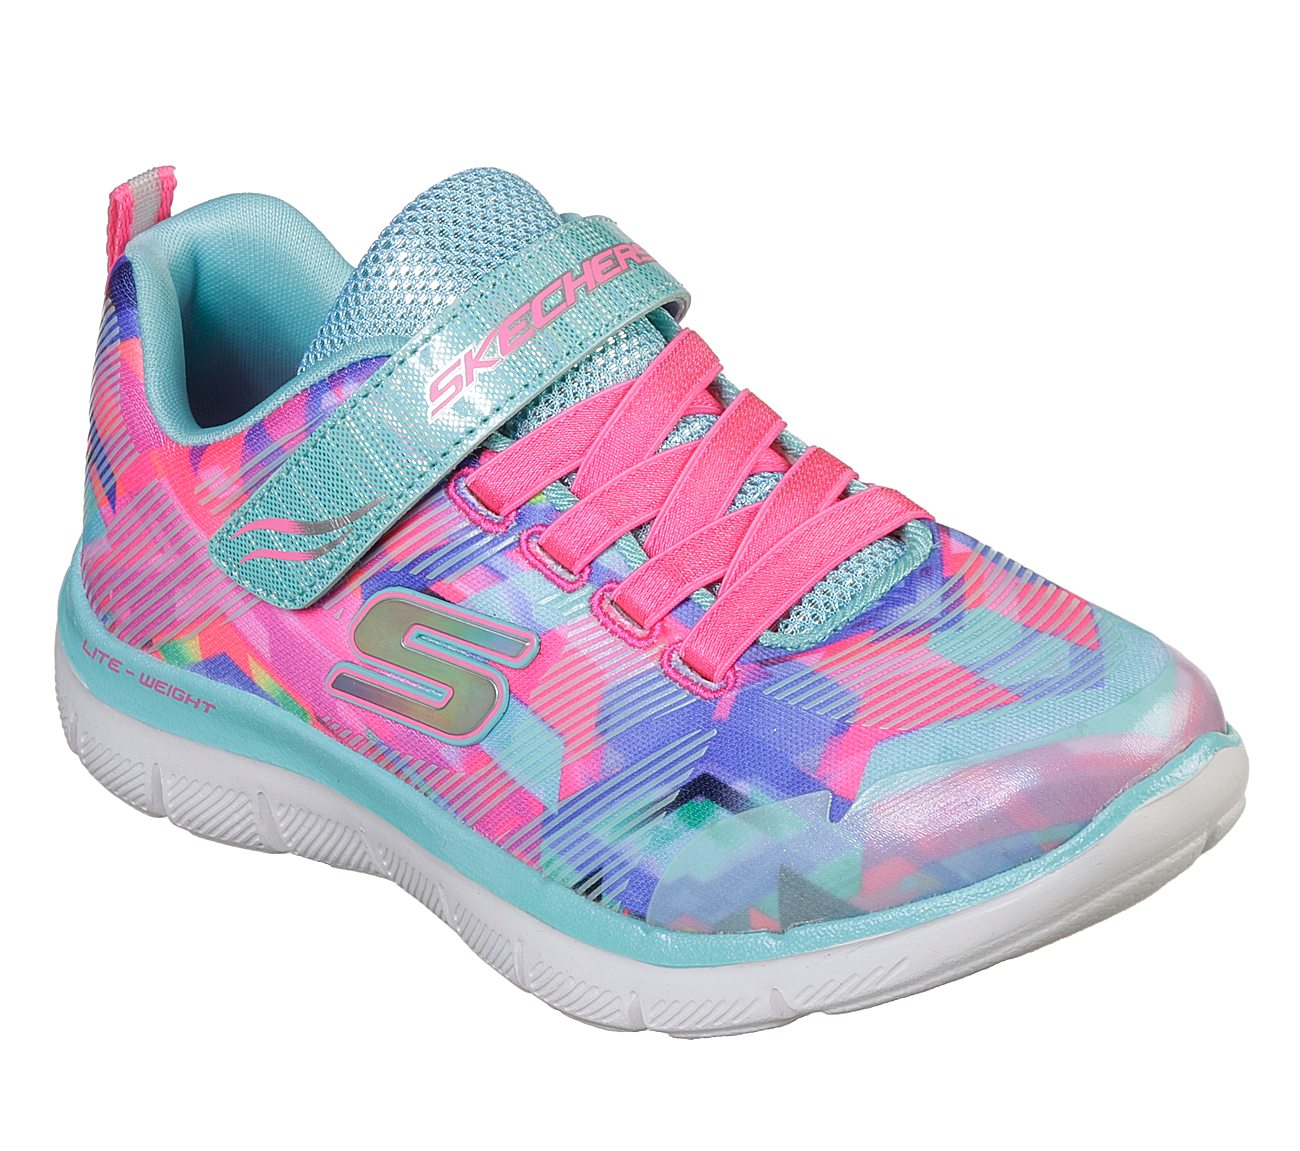 67f34f3ae2c7 Buy SKECHERS Skech Appeal 2.0 - Color Me Slip-On Sneakers Shoes only ...